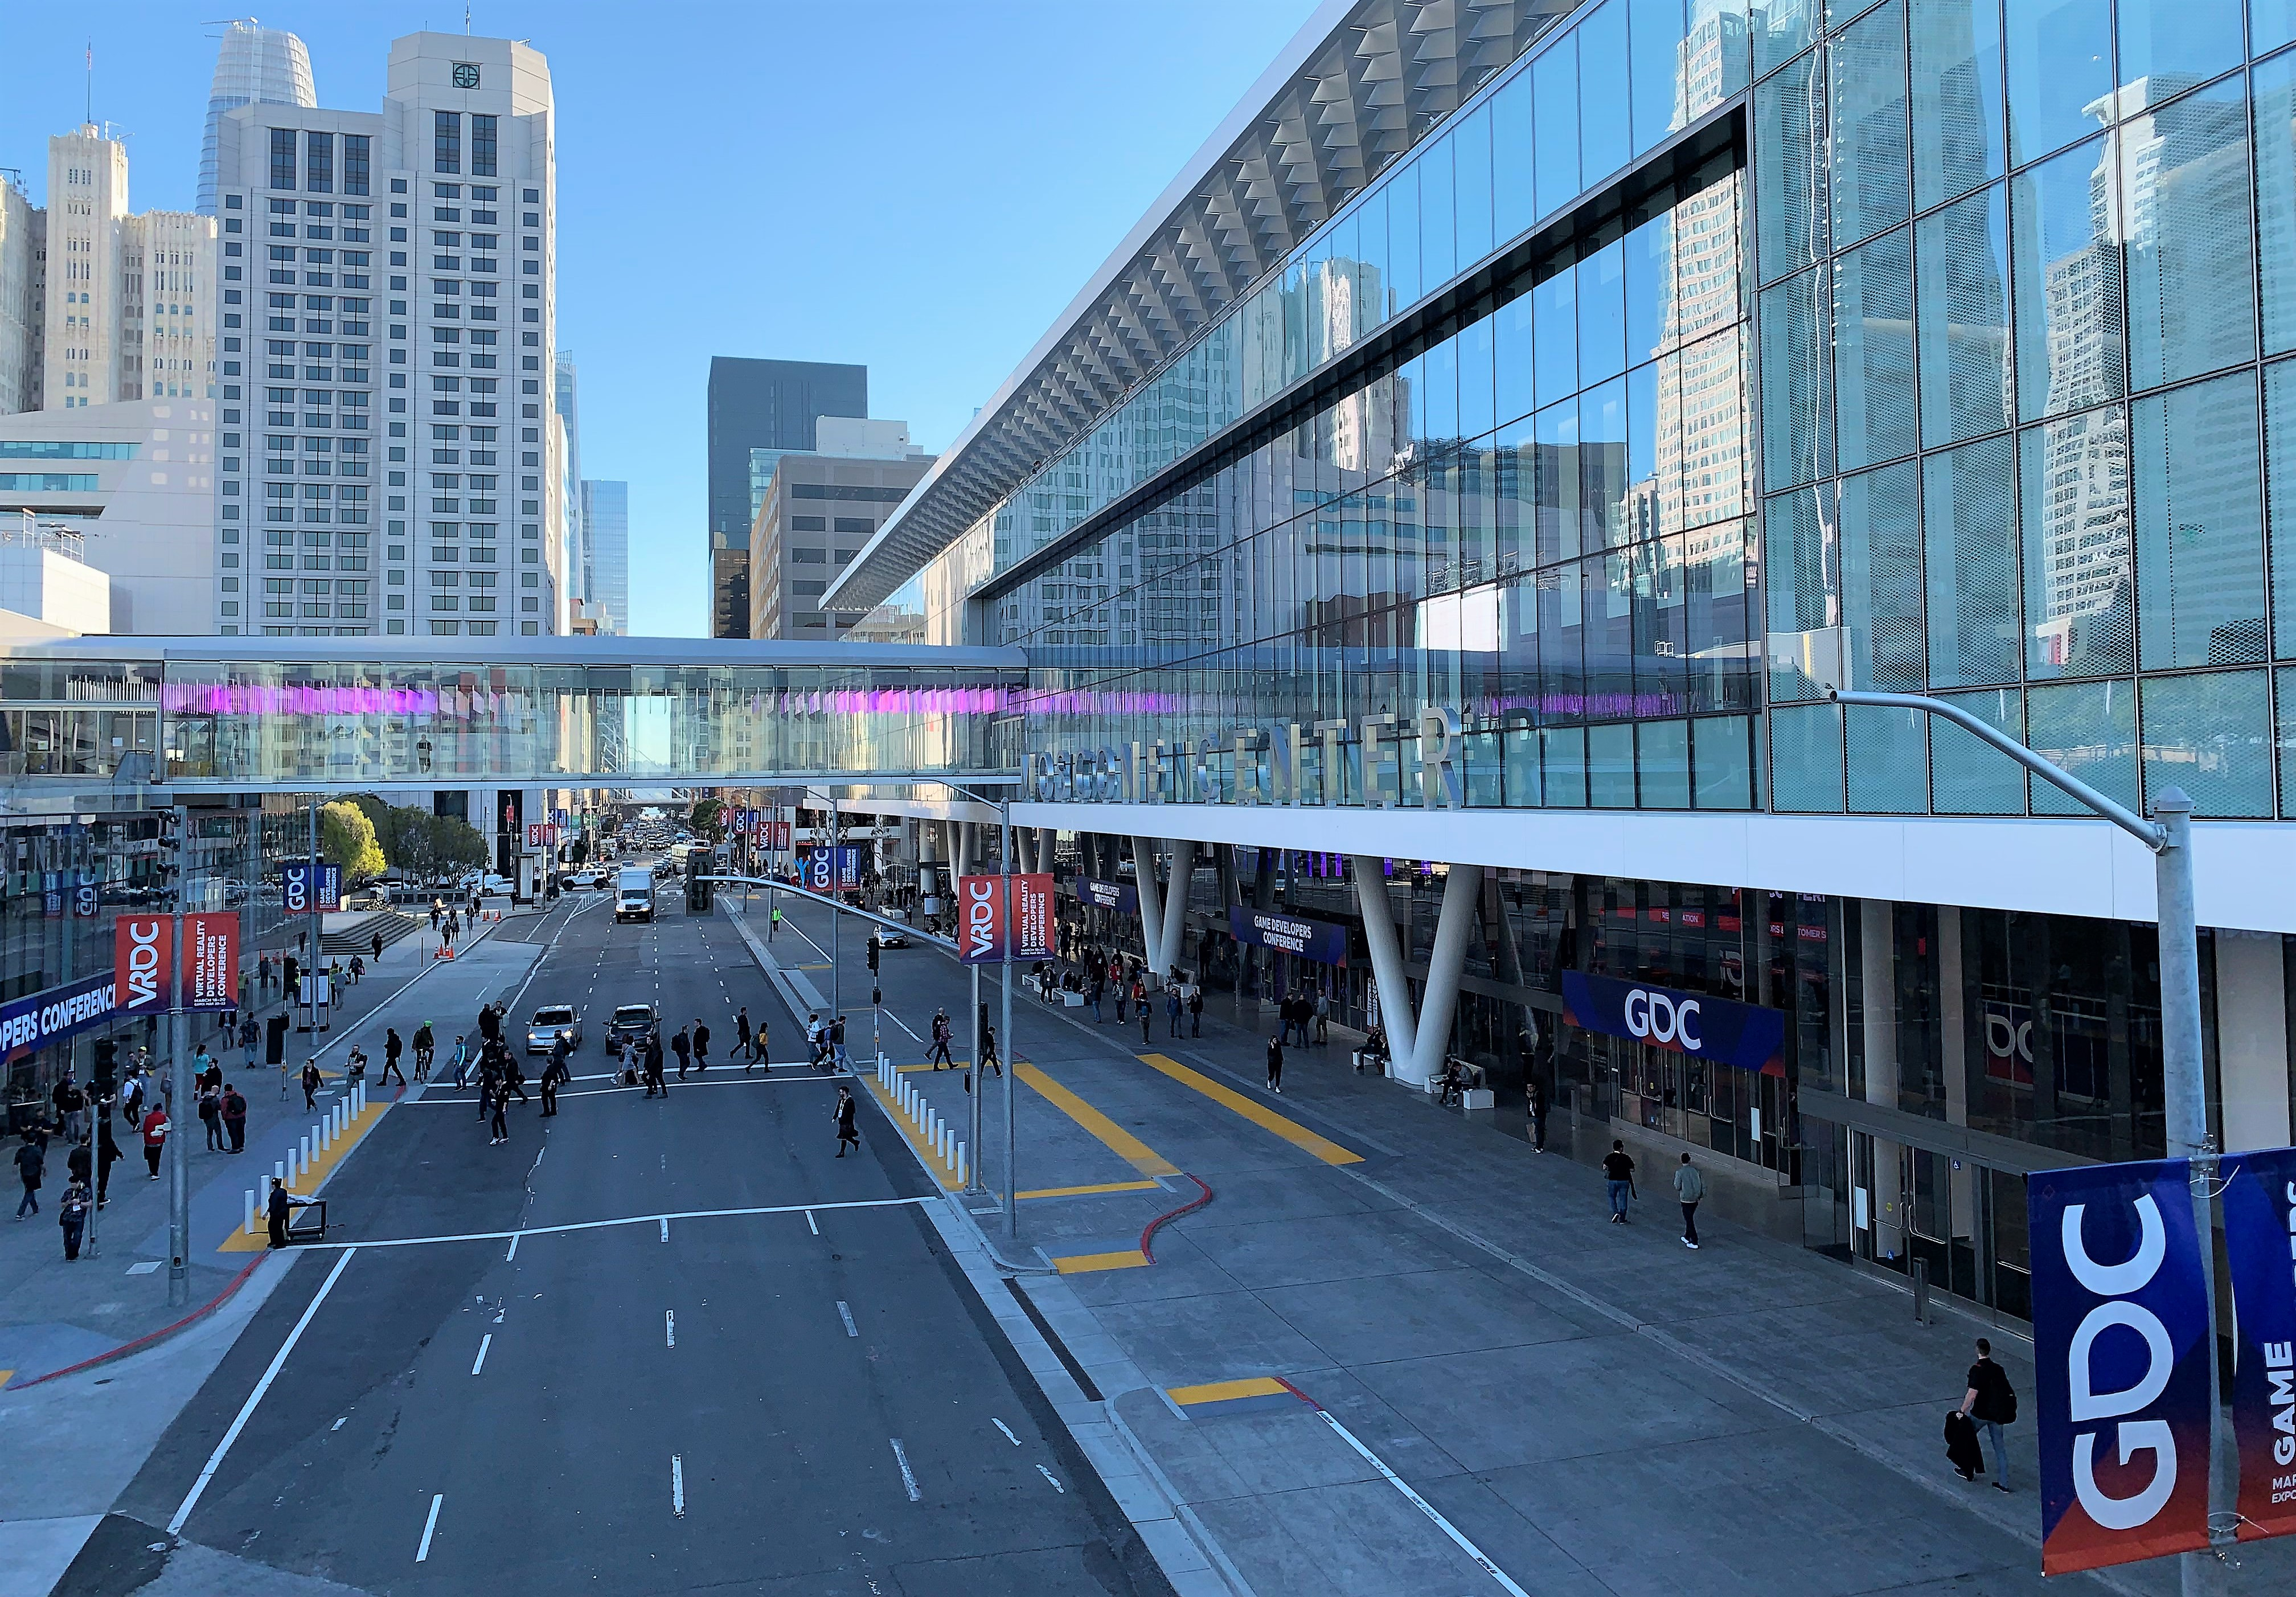 Game Developers Conference at Moscone Center, San Francisco